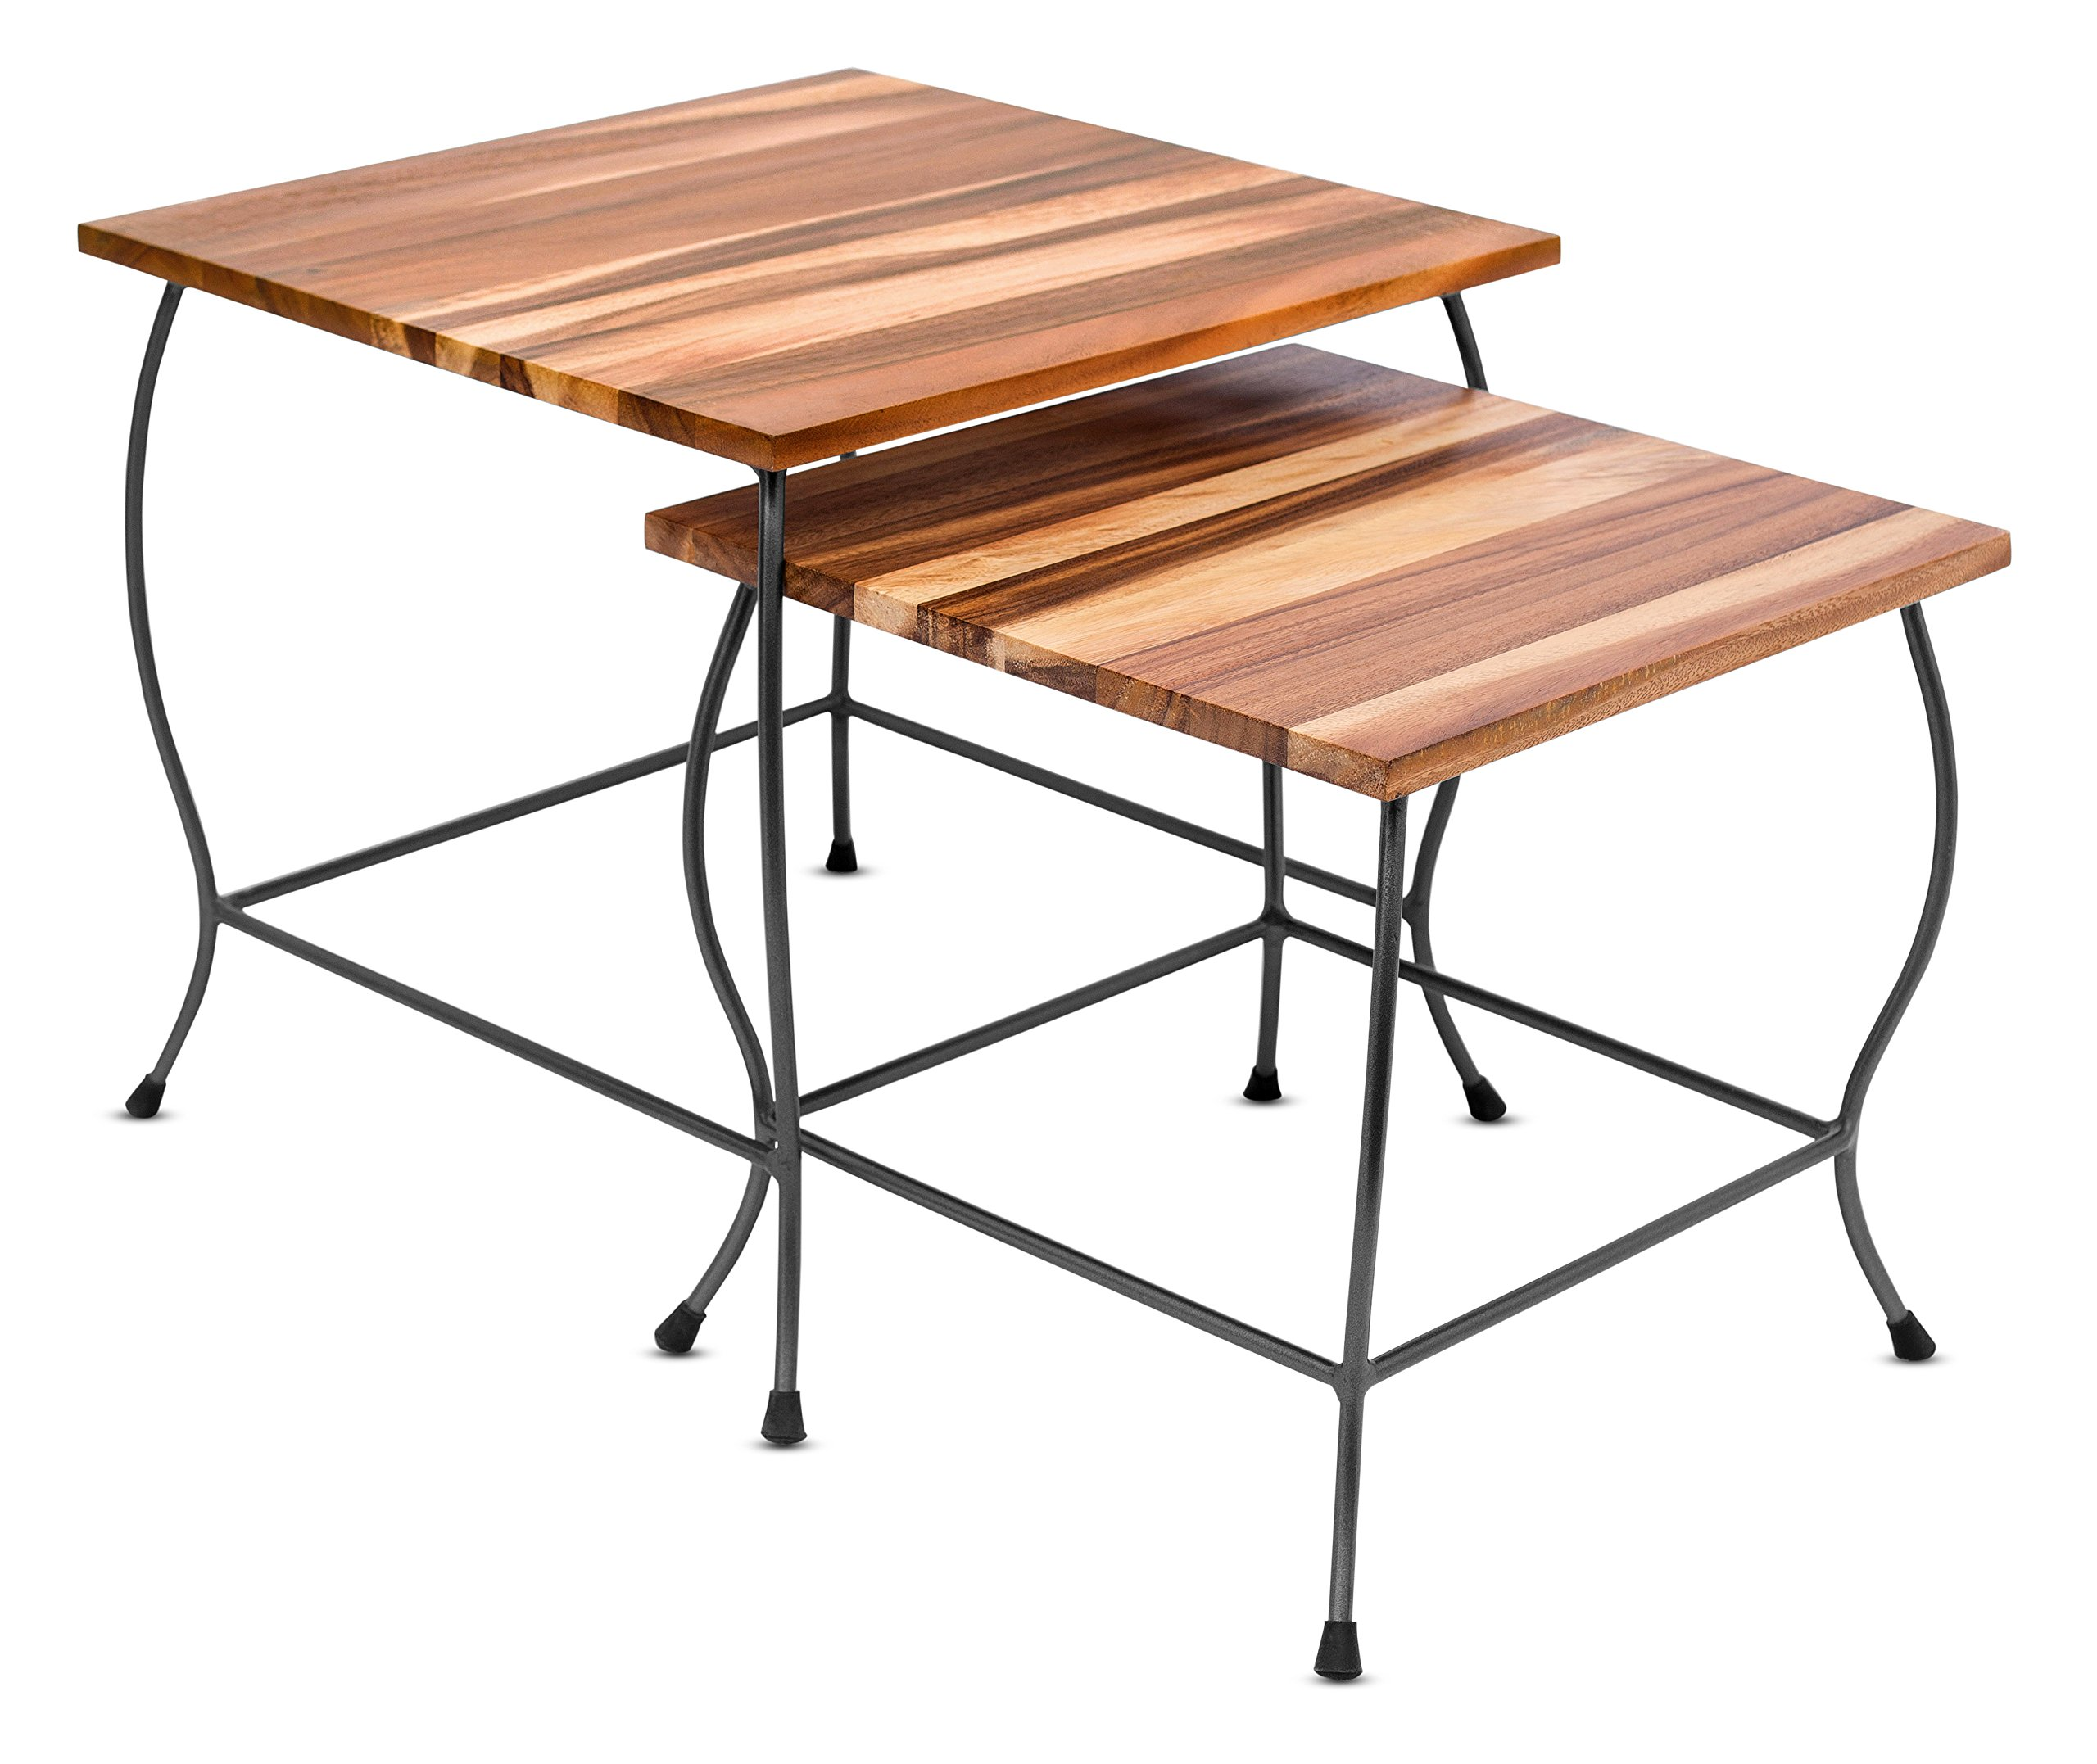 BirdRock Home 2pc Acacia Wood Nesting Tables | Natural Wood Bed Sofa Snack End Table | Industrial Design | Accent Side Table | Living Room